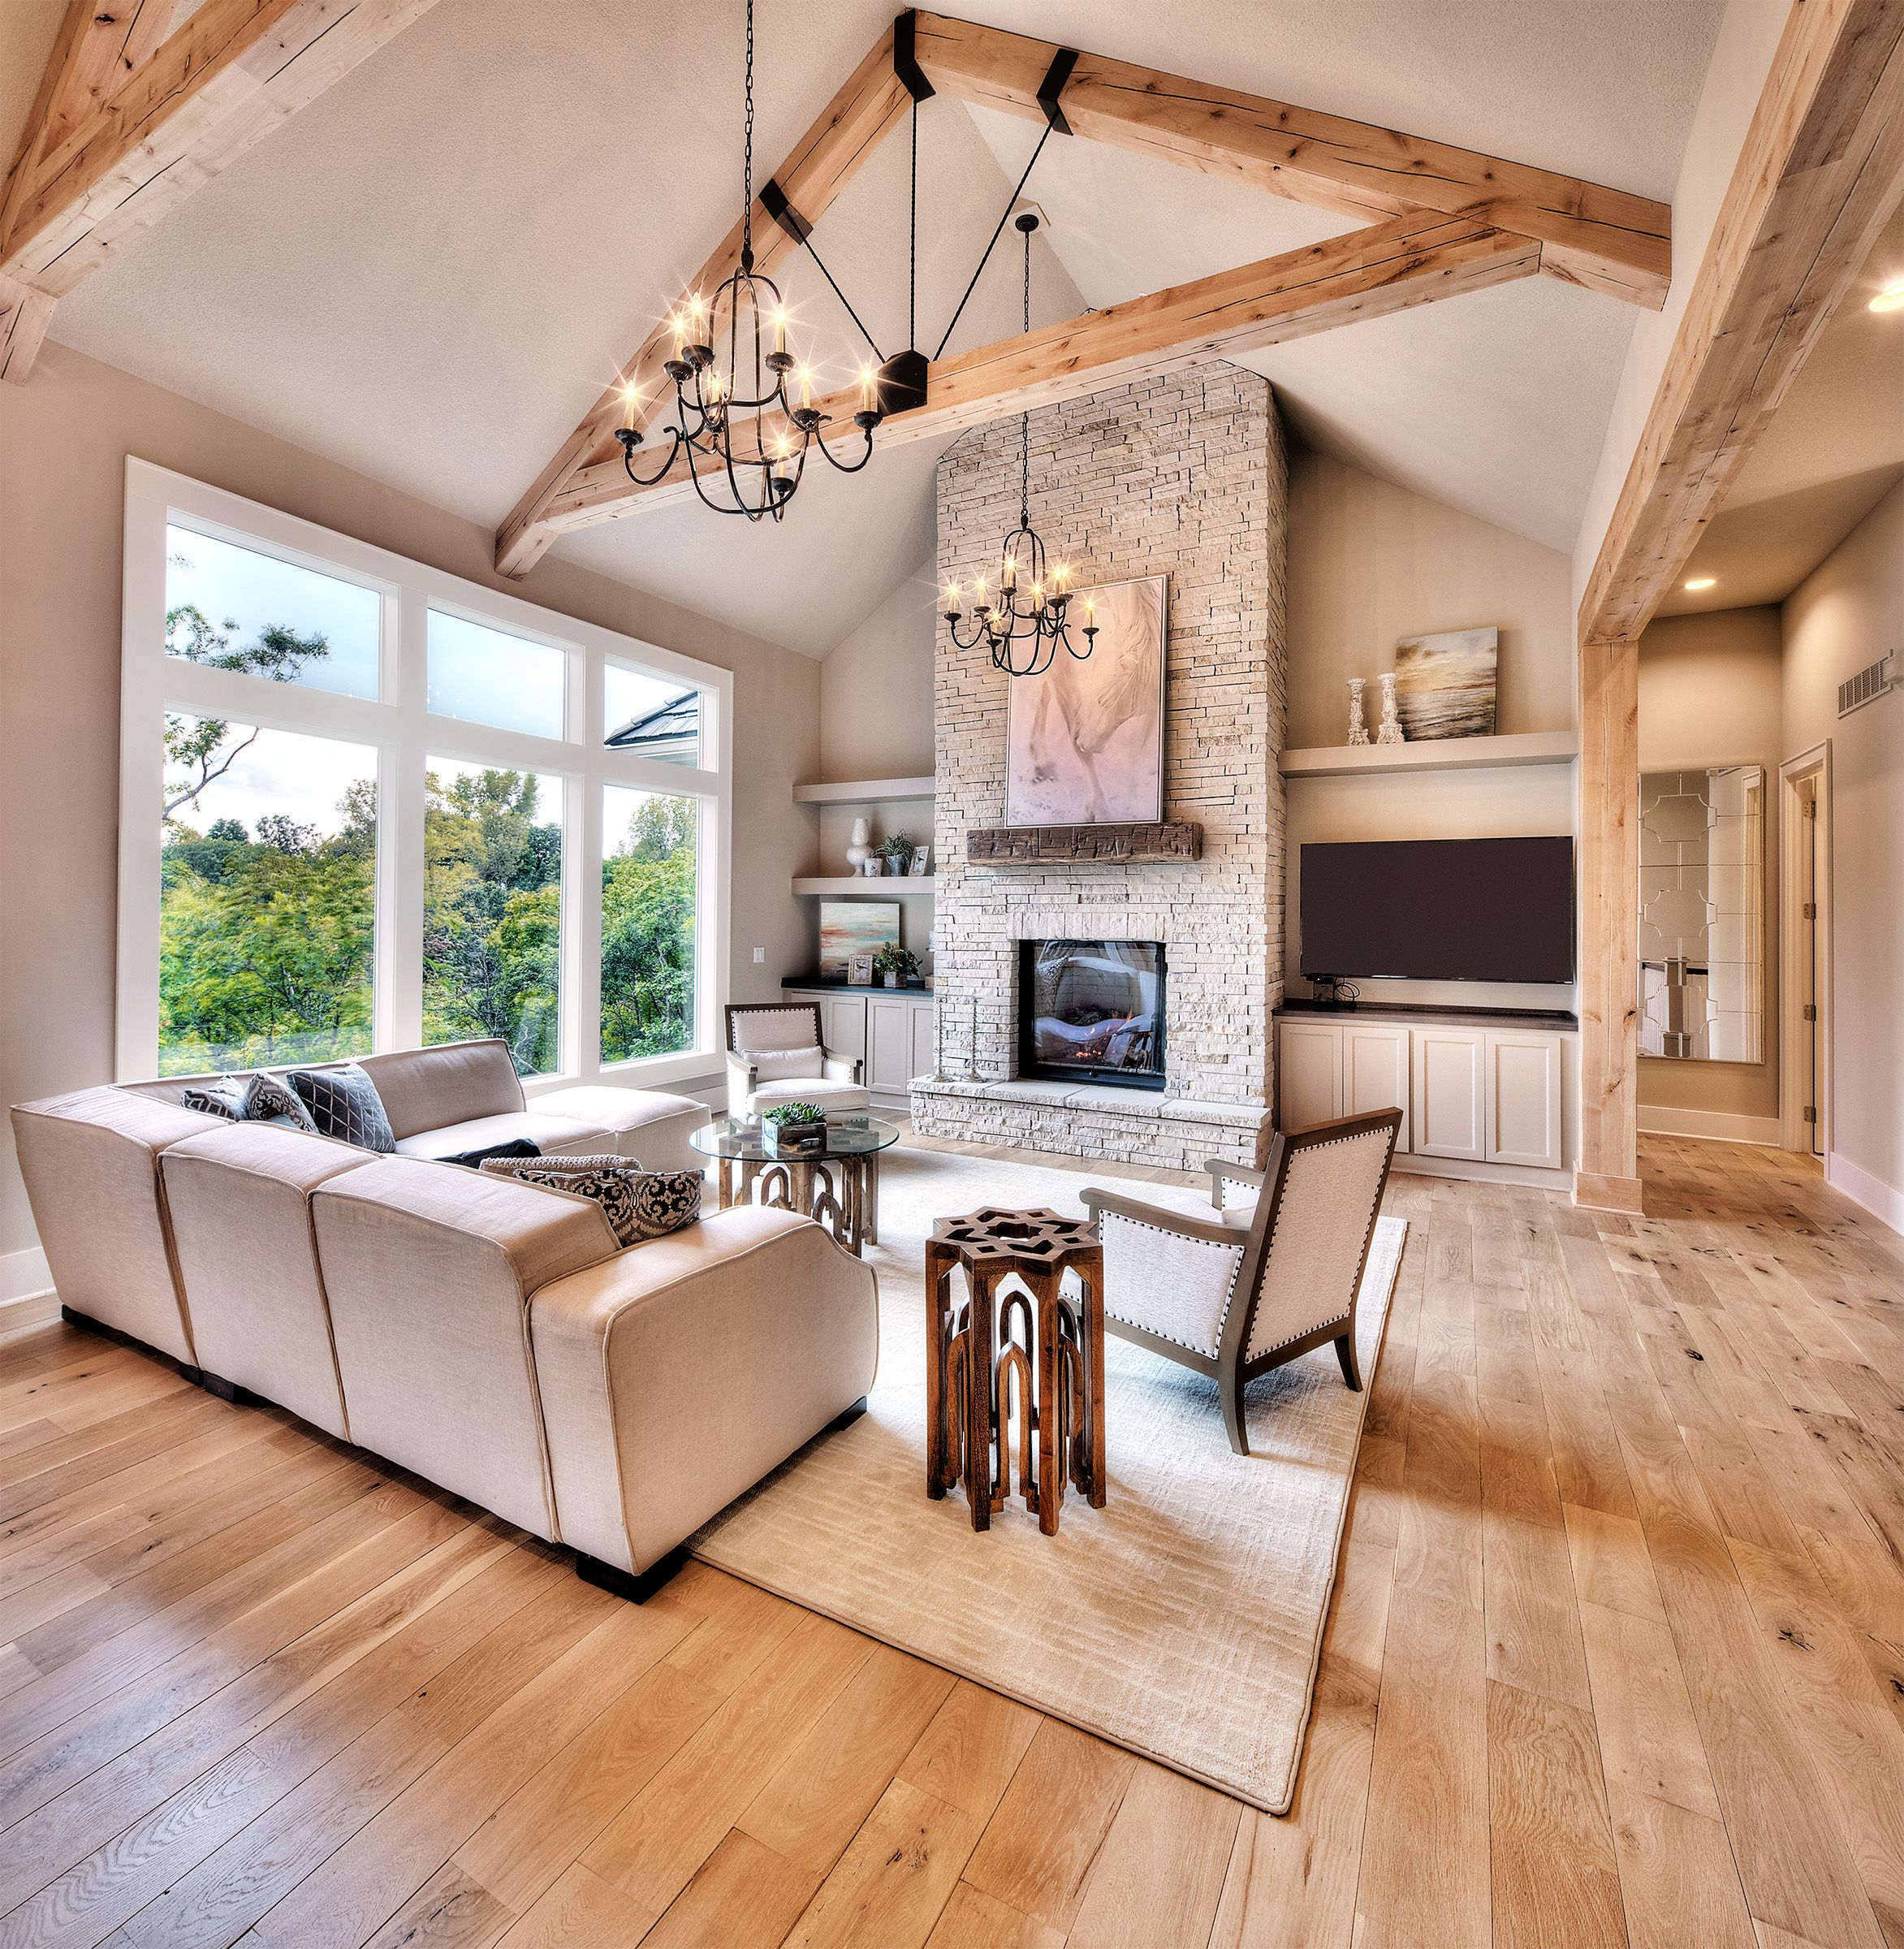 A Large Living Room To Socialise In: Hearthroom: Hardwood Floors, Large Windows, Open Concept